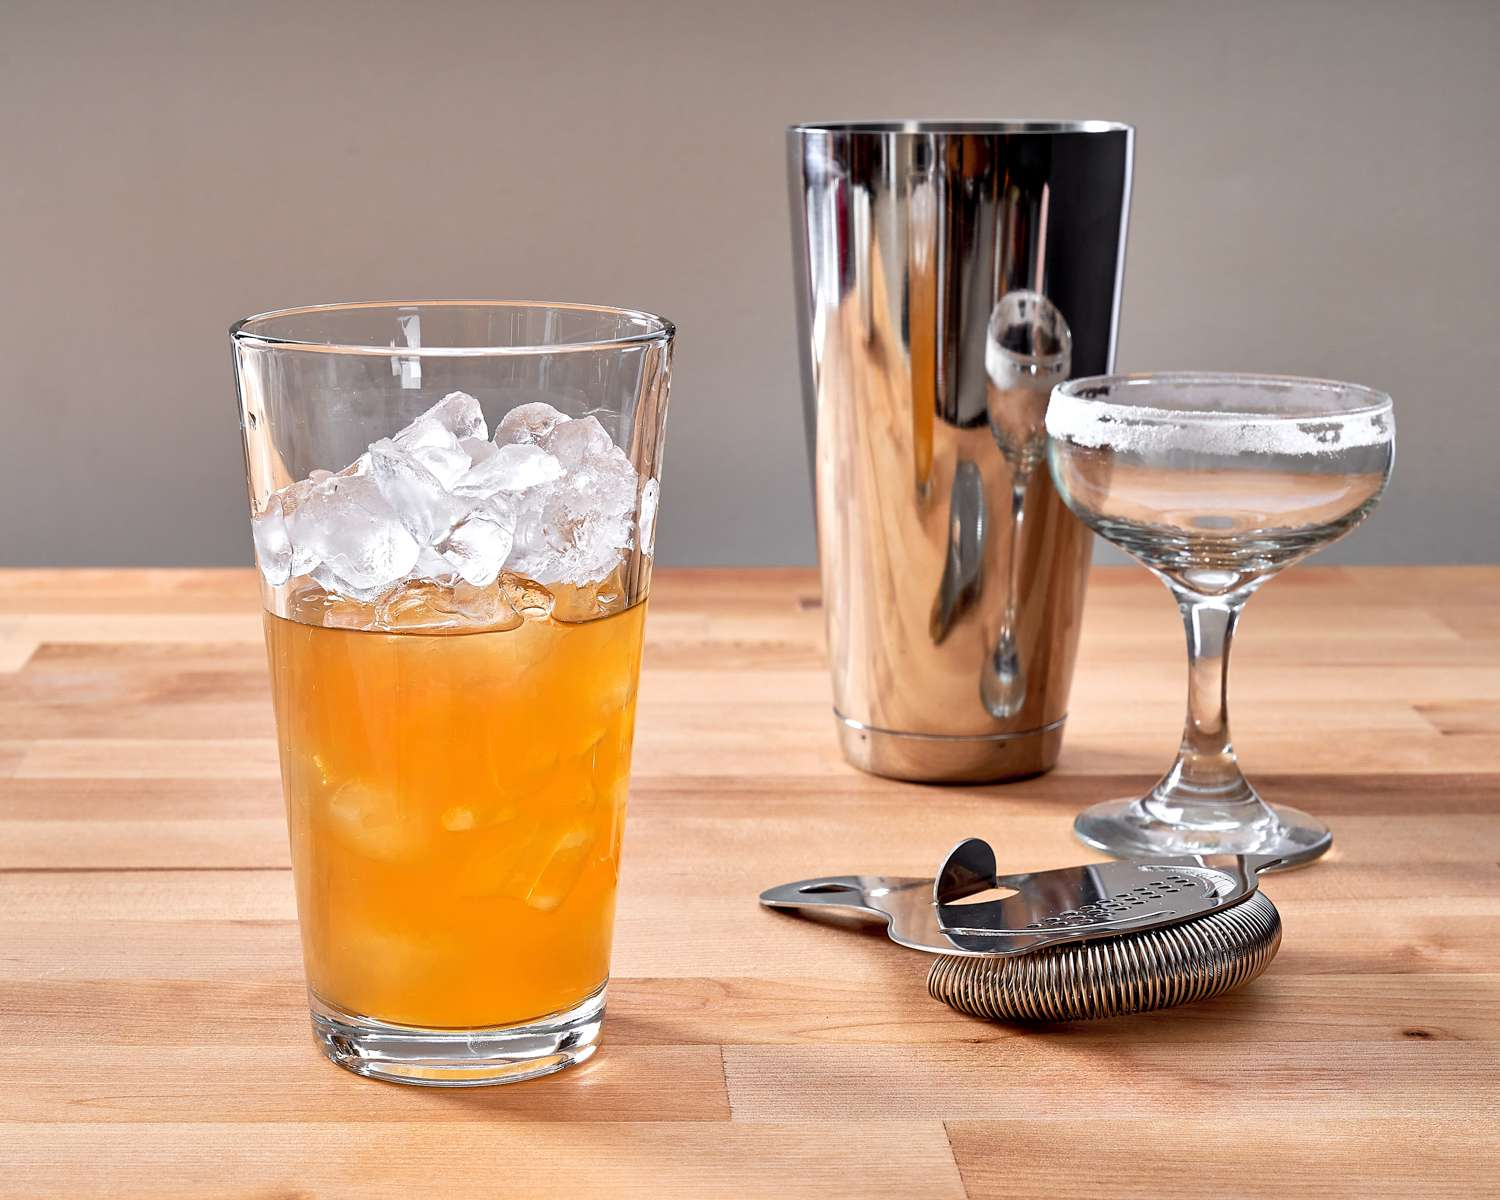 a cocktail shaker glass filled with ingredients for a sidecar cocktail